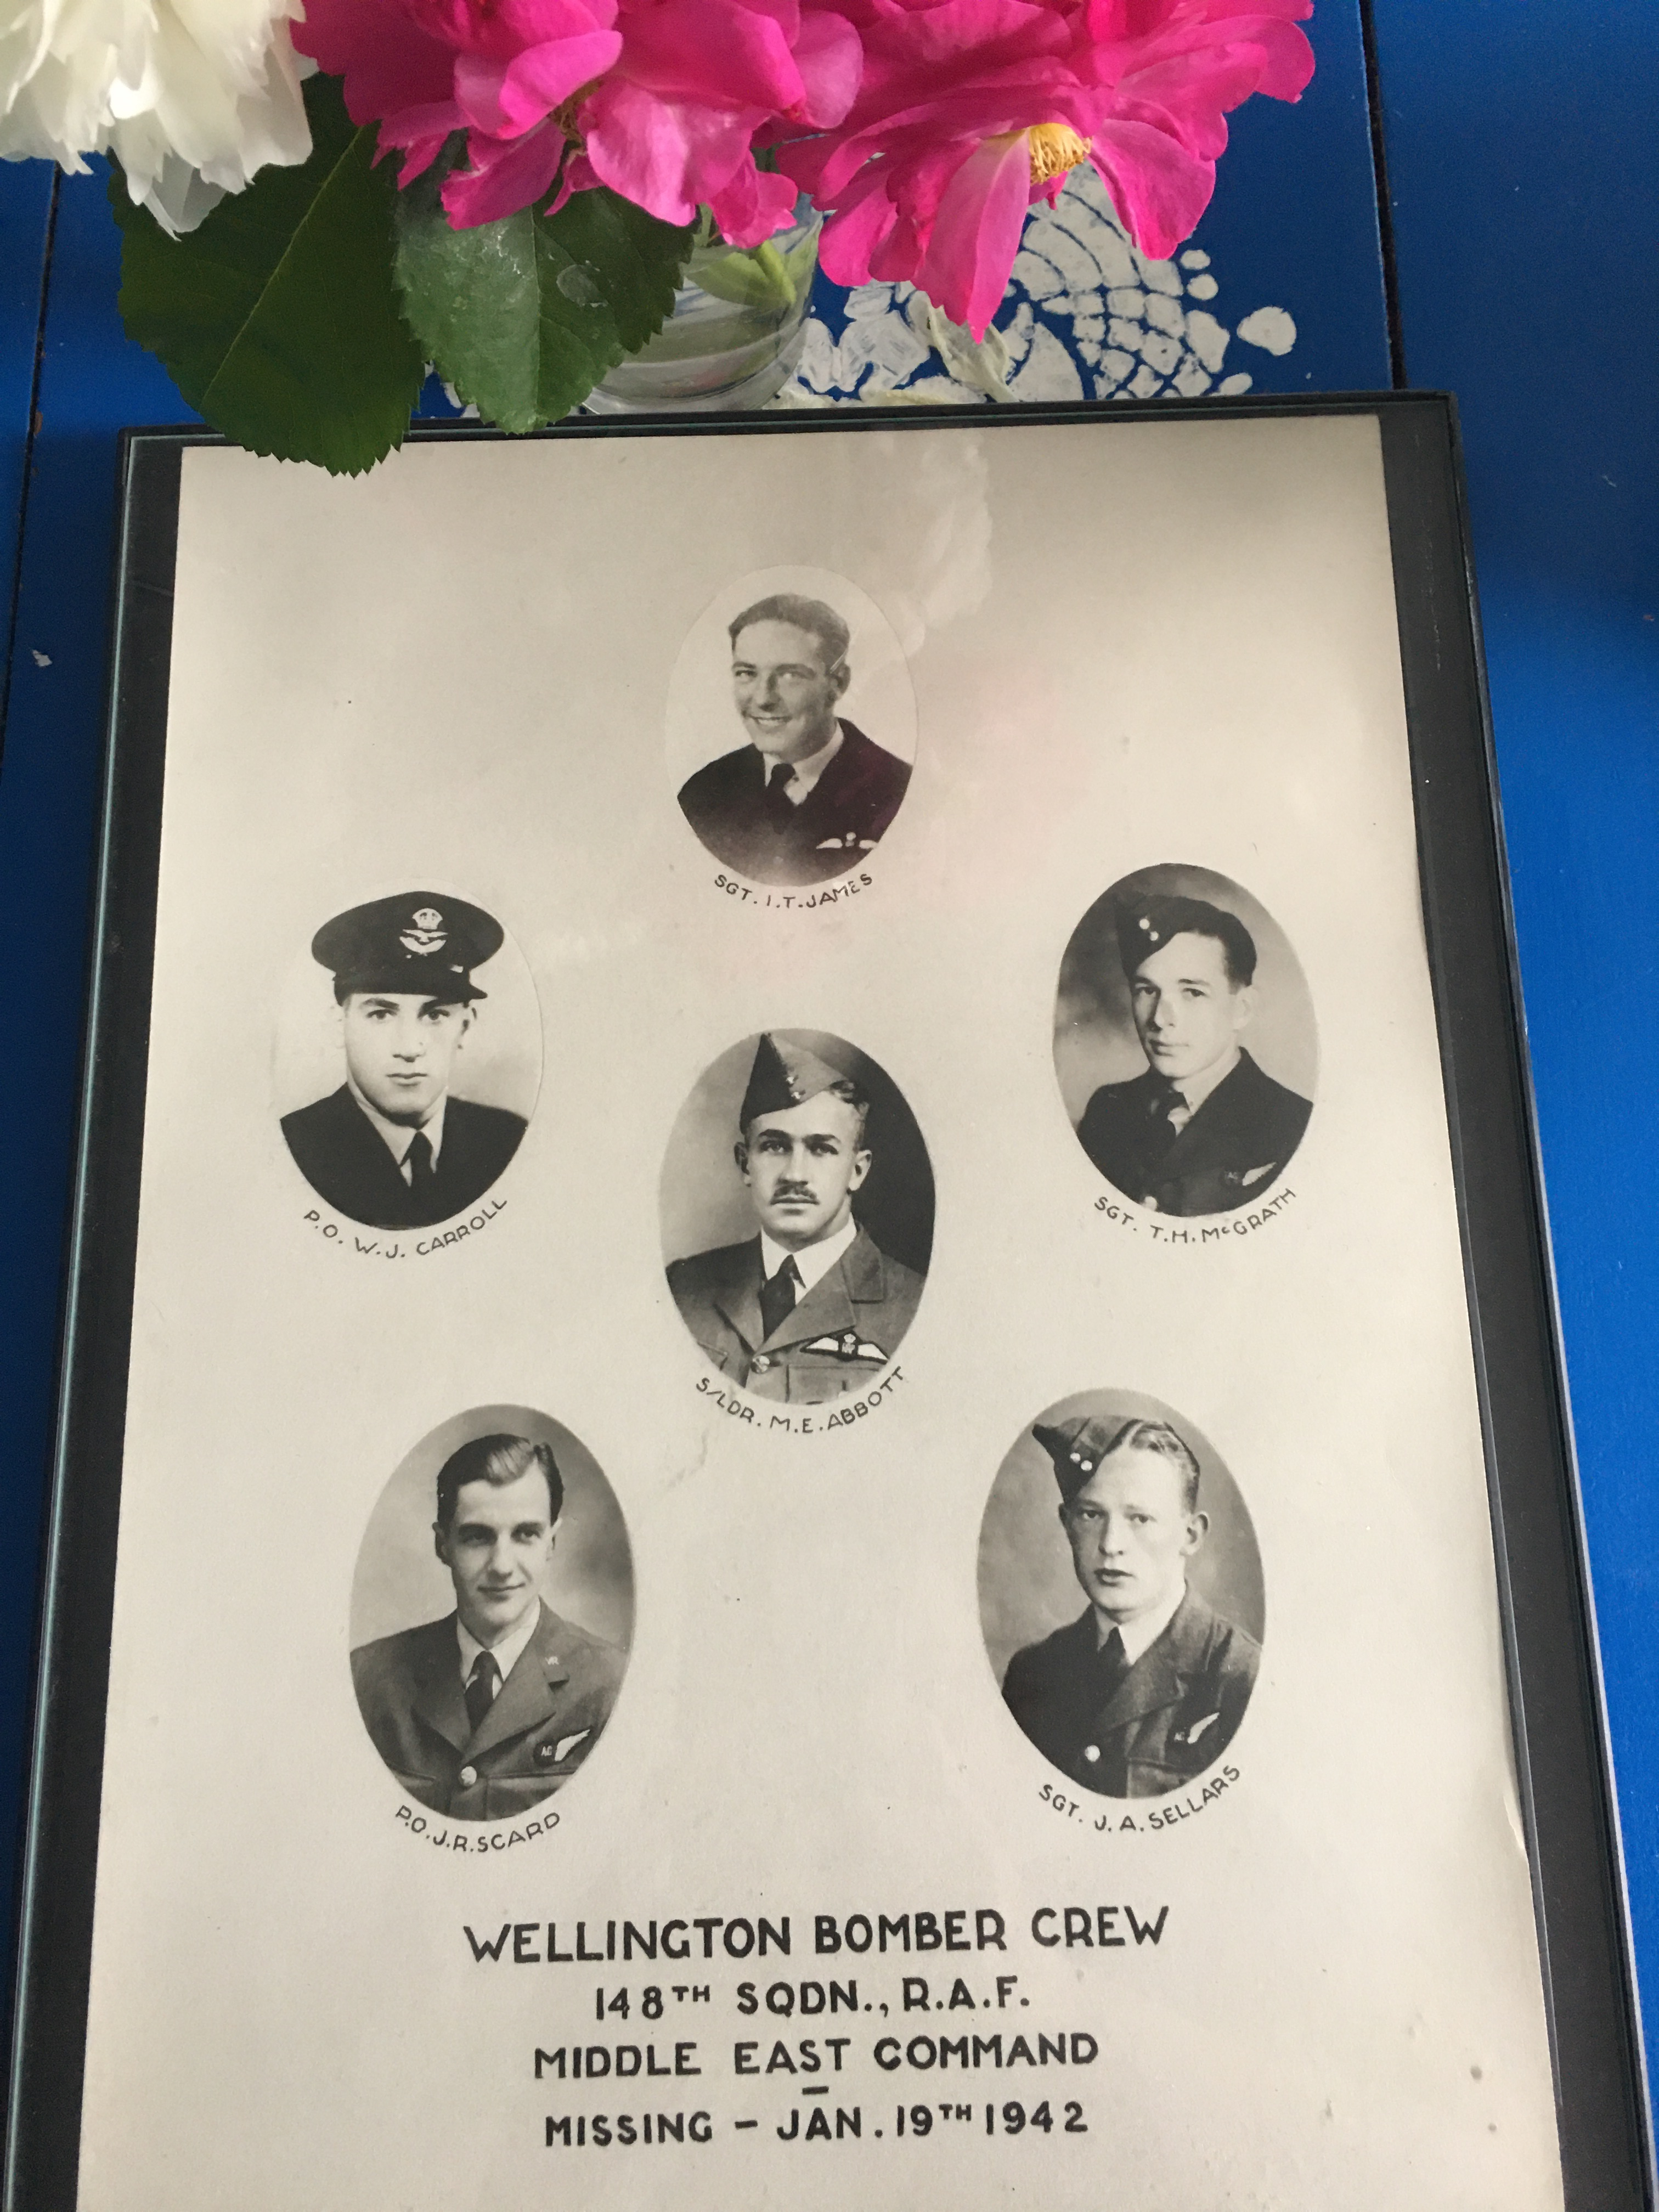 Sadly, all crew members were KIA and their remains were never found.